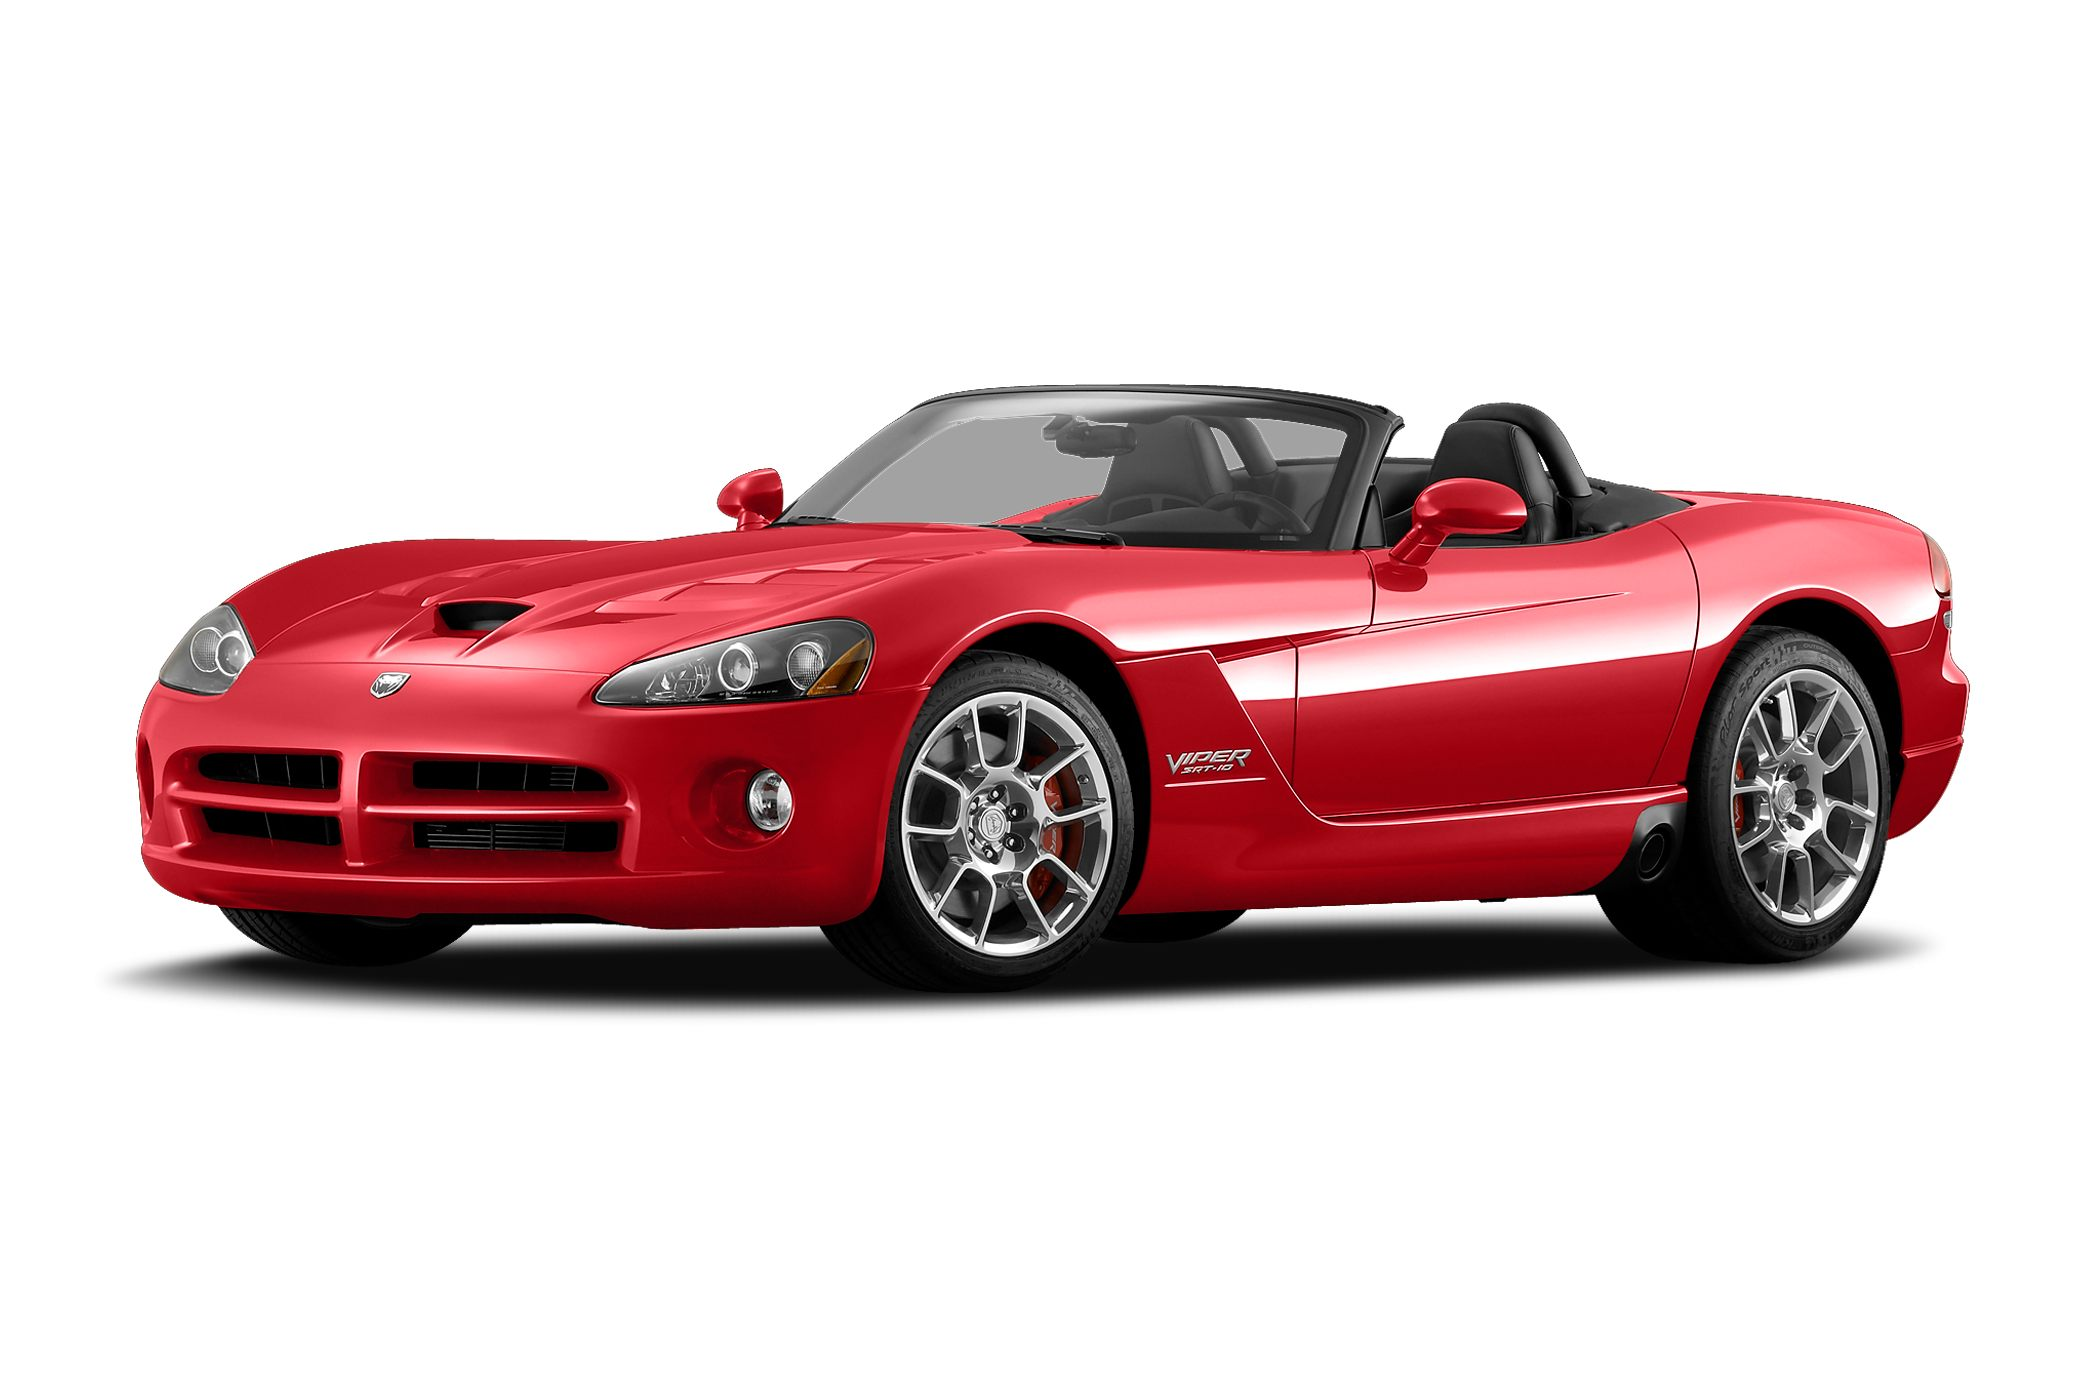 2009 Dodge Viper SRT-10 Convertible for sale in Wichita for $71,988 with 3,567 miles.